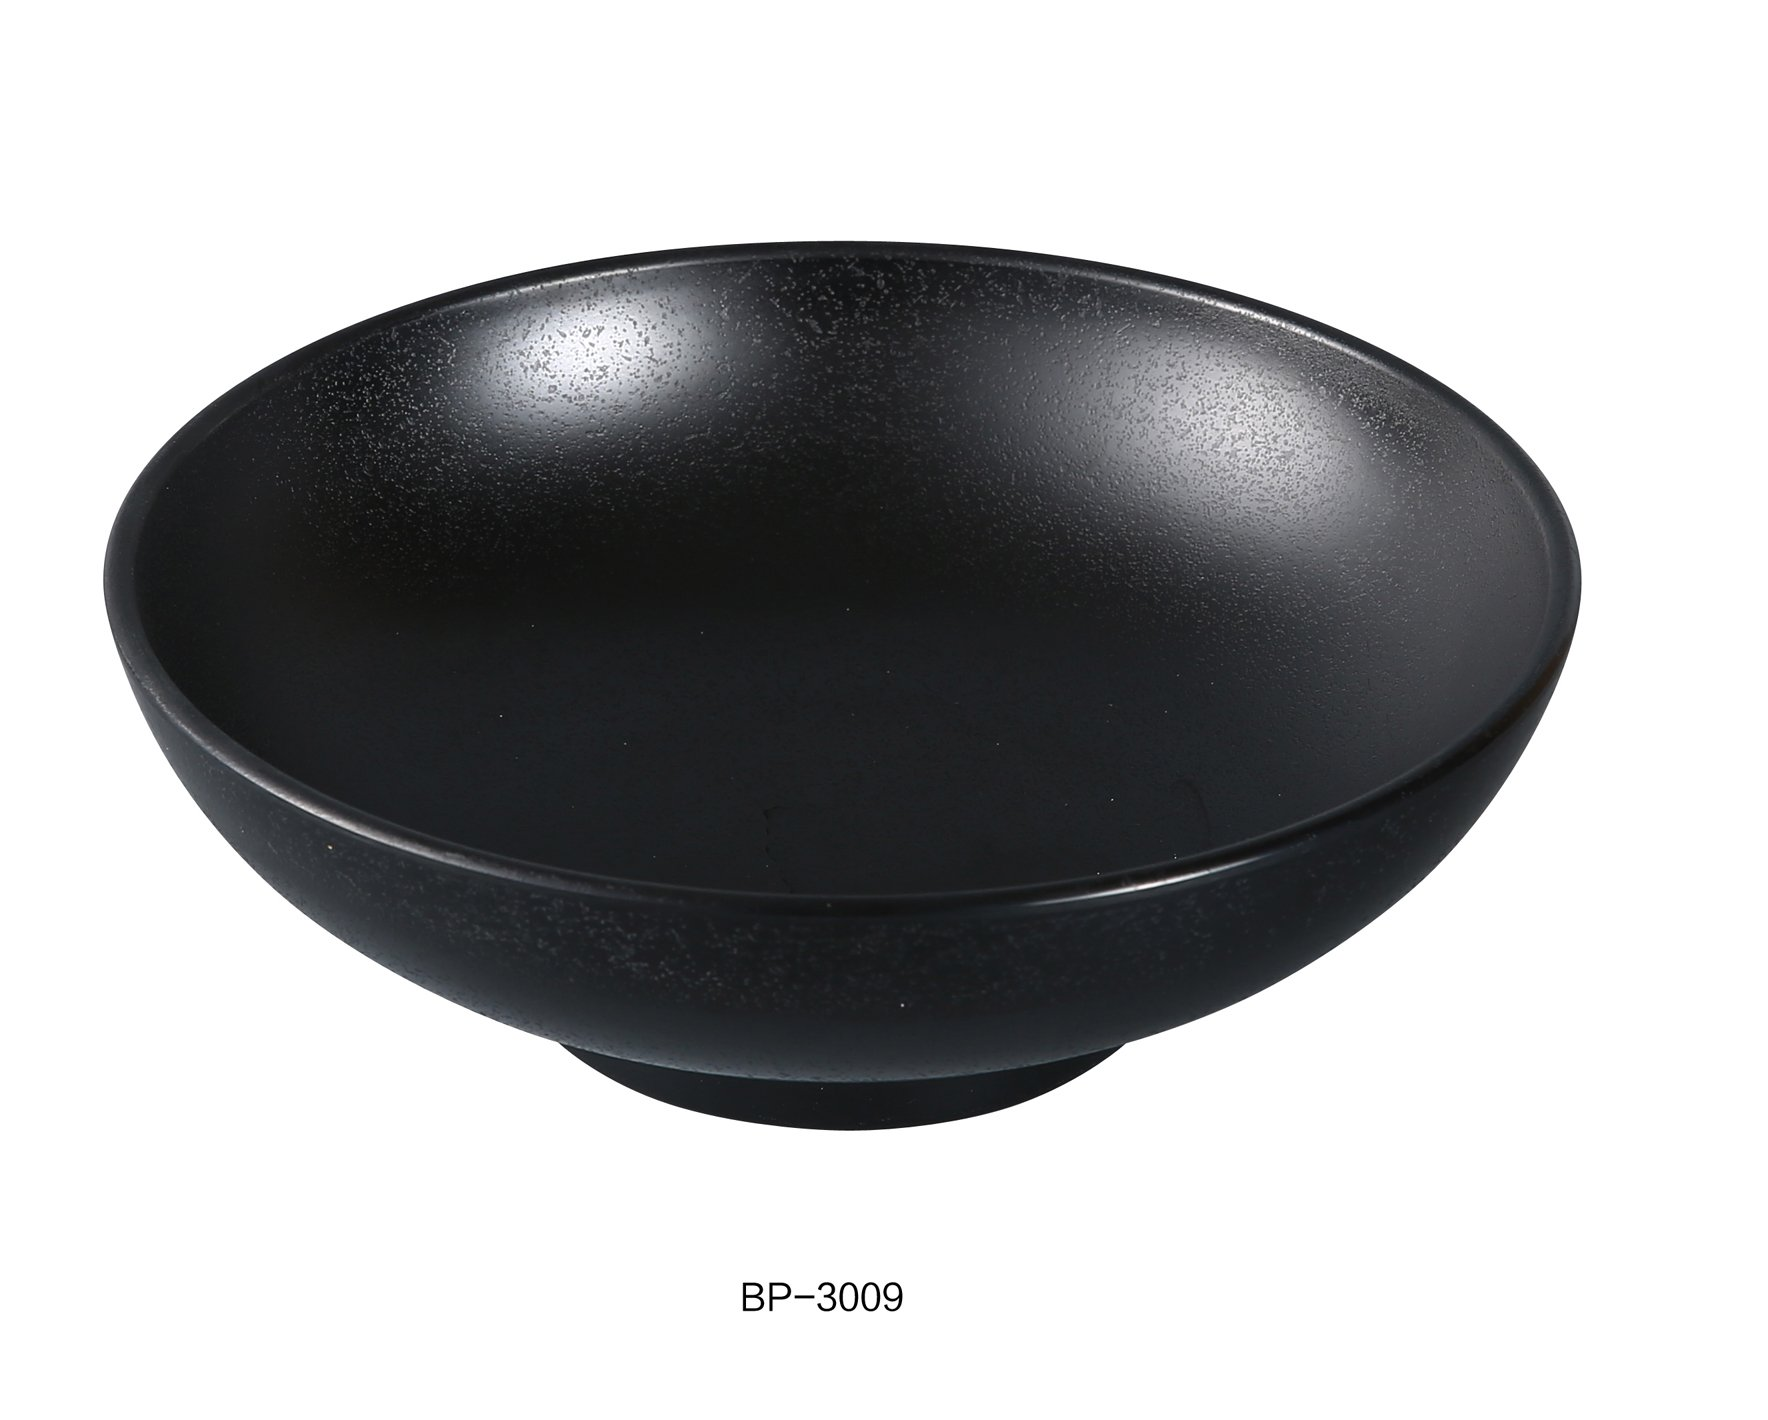 Yanco Asian Style Black Pearl Melamine with Matting Surface 9'' X 3 1/4'' NOODLE BOWL 48 OZ box of 24